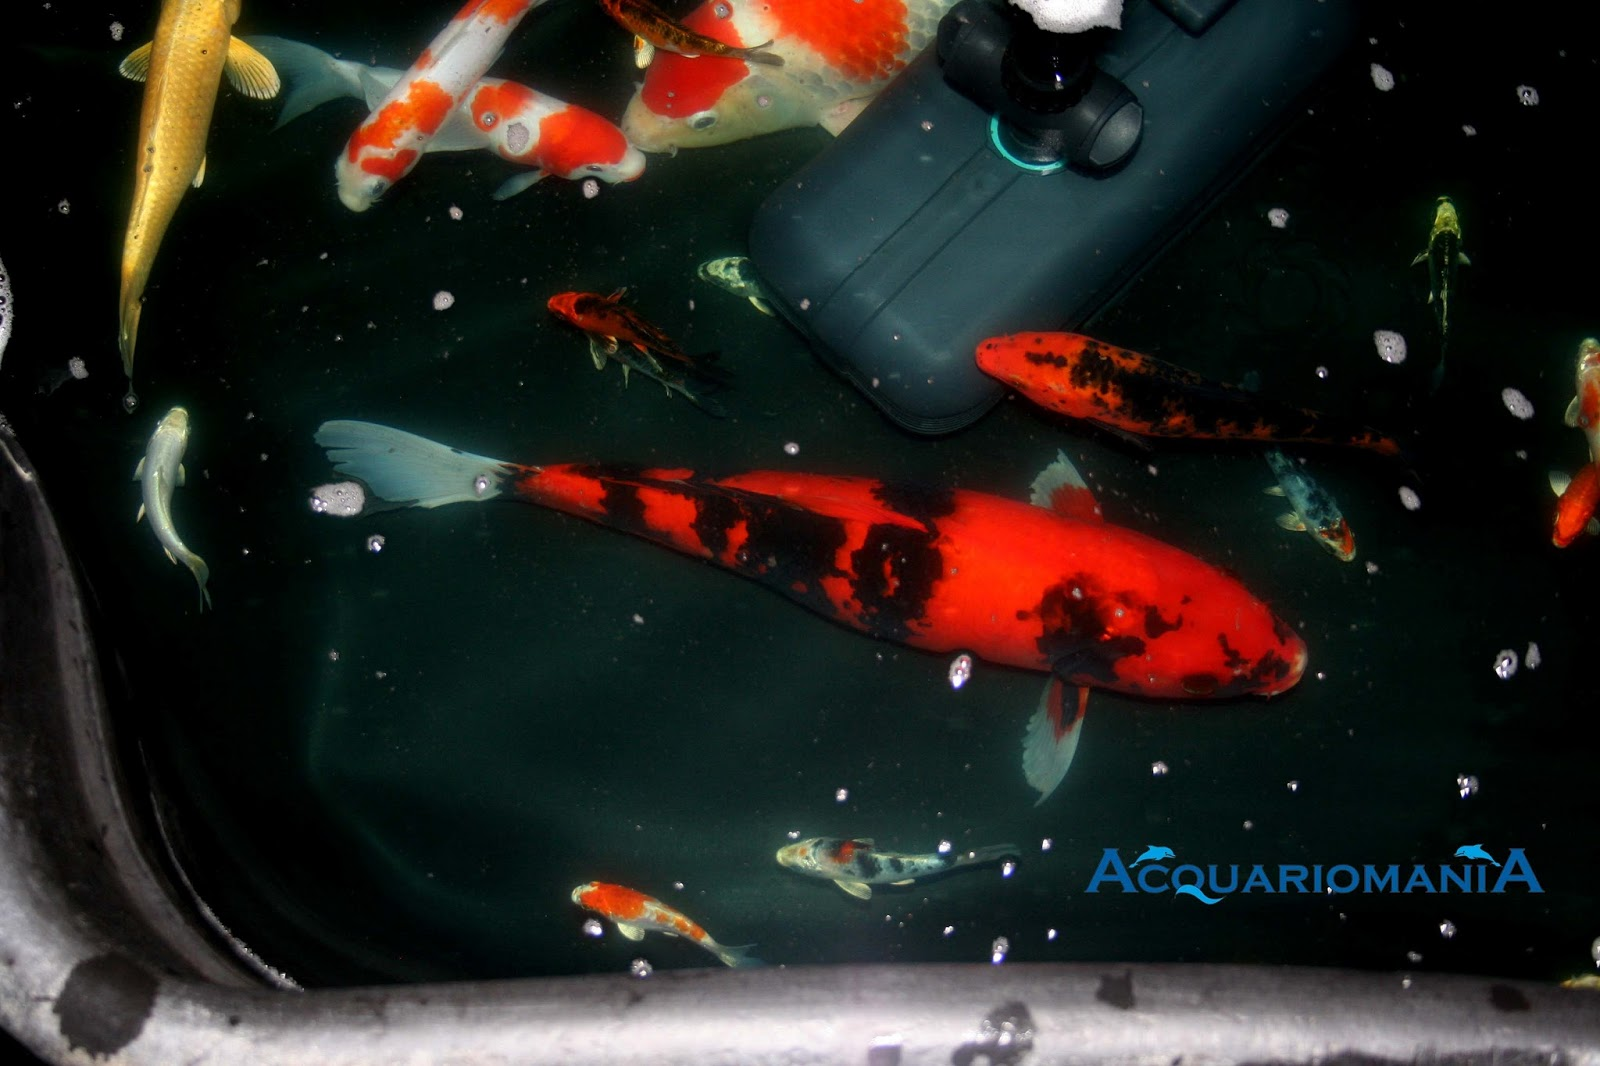 Acquariomania carpe koi for Carpe koi b